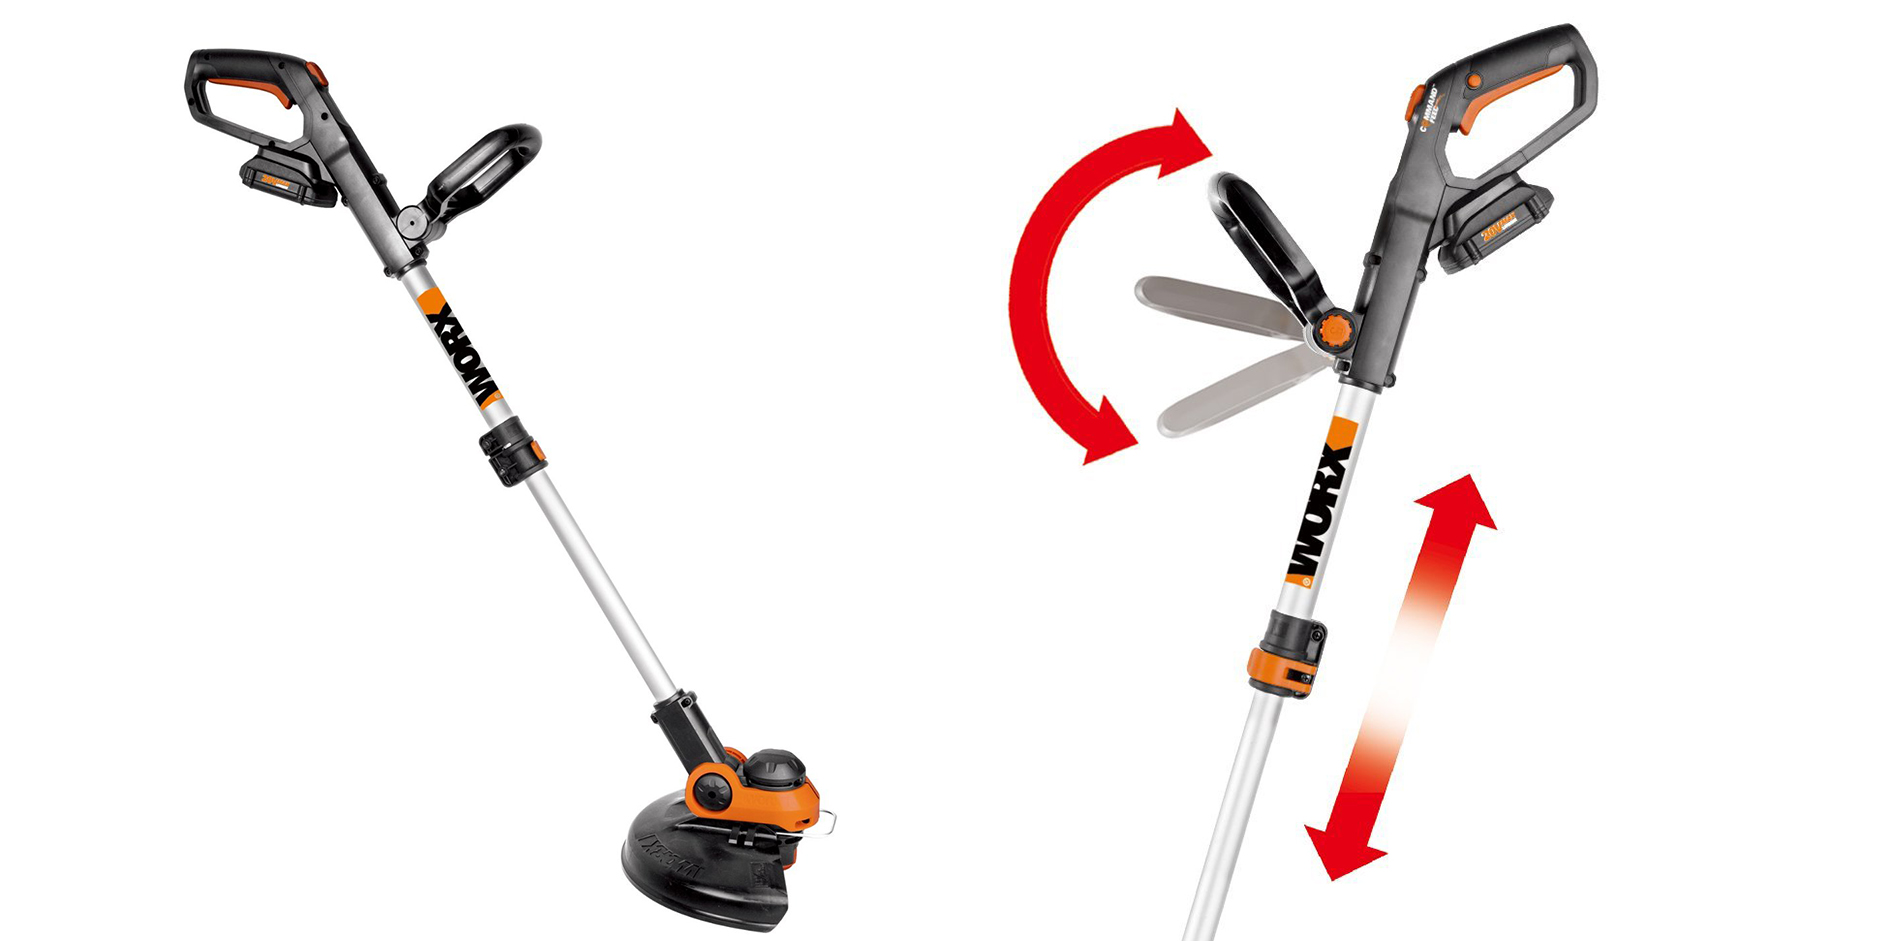 Prep for spring w/ the Worx 12-inch Cordless Electric String Trimmer for $80 (Reg. $100)